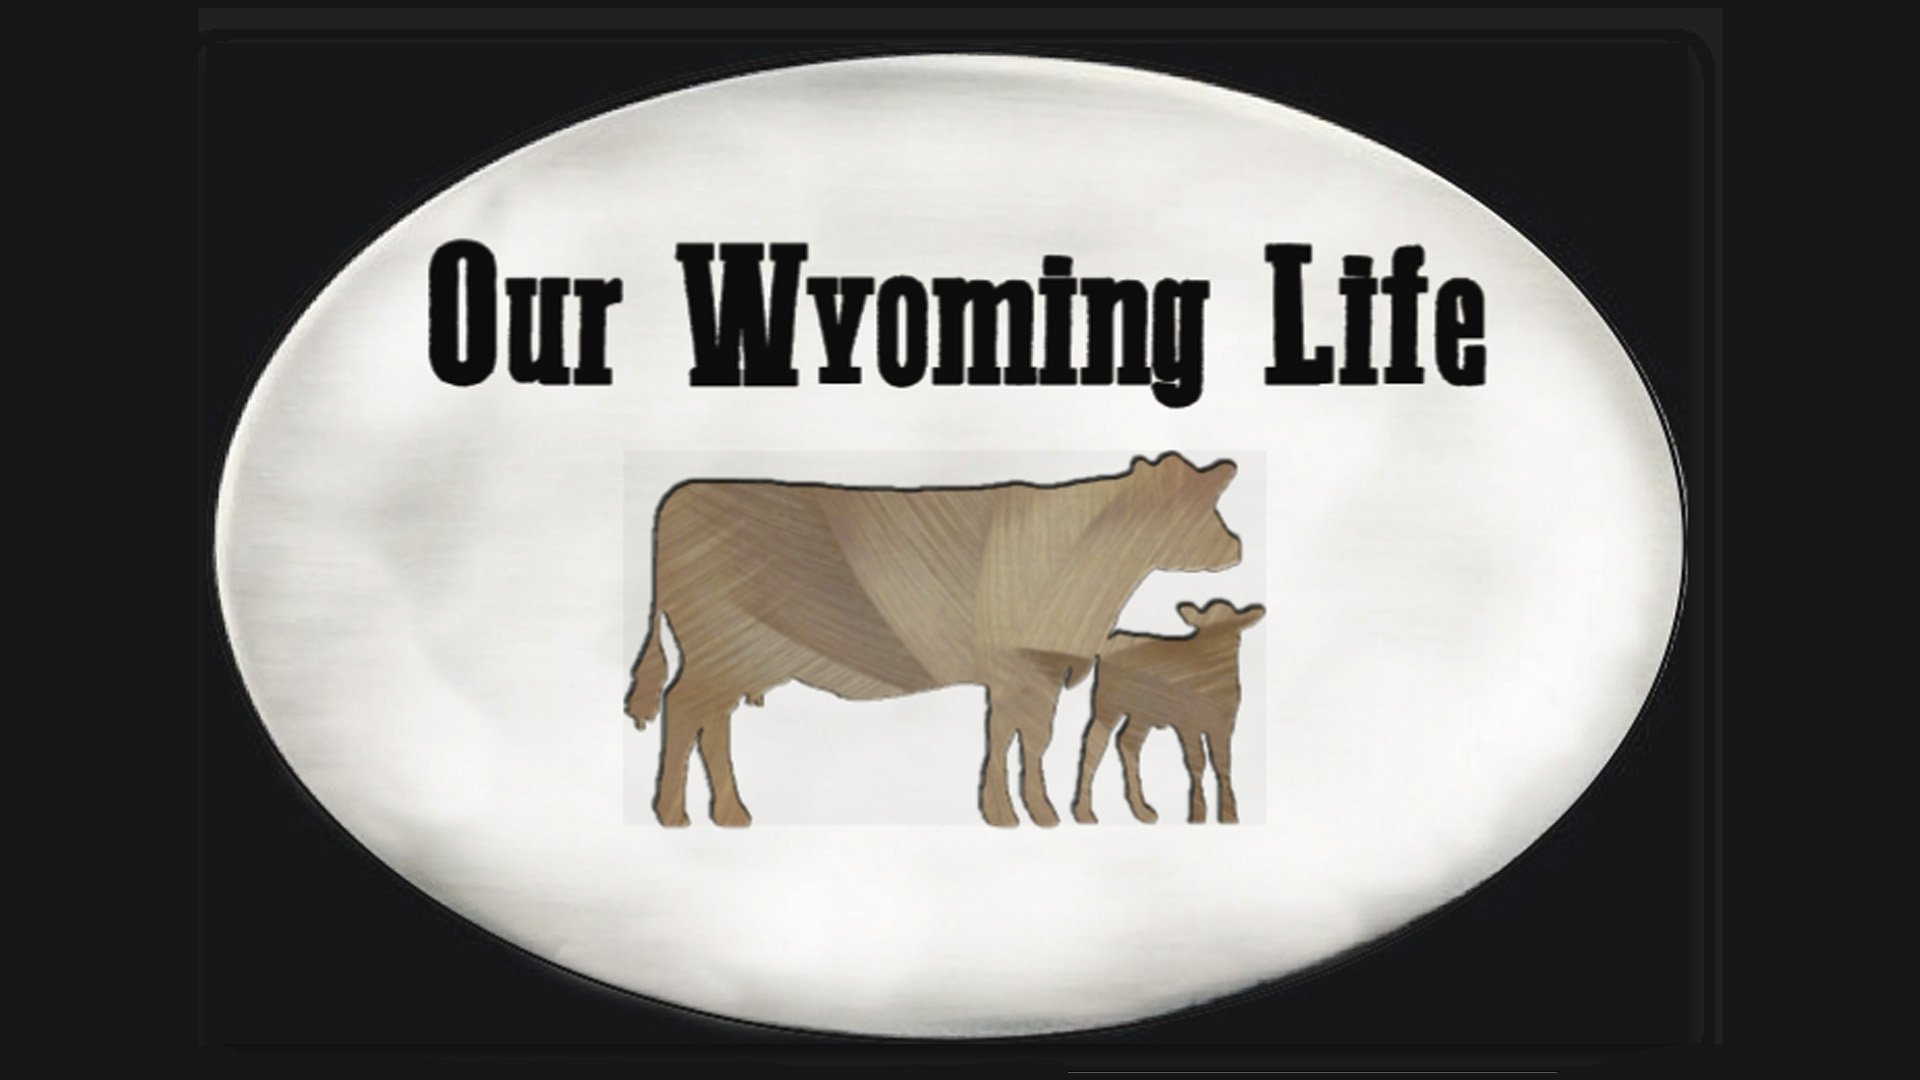 Our Wyoming Life